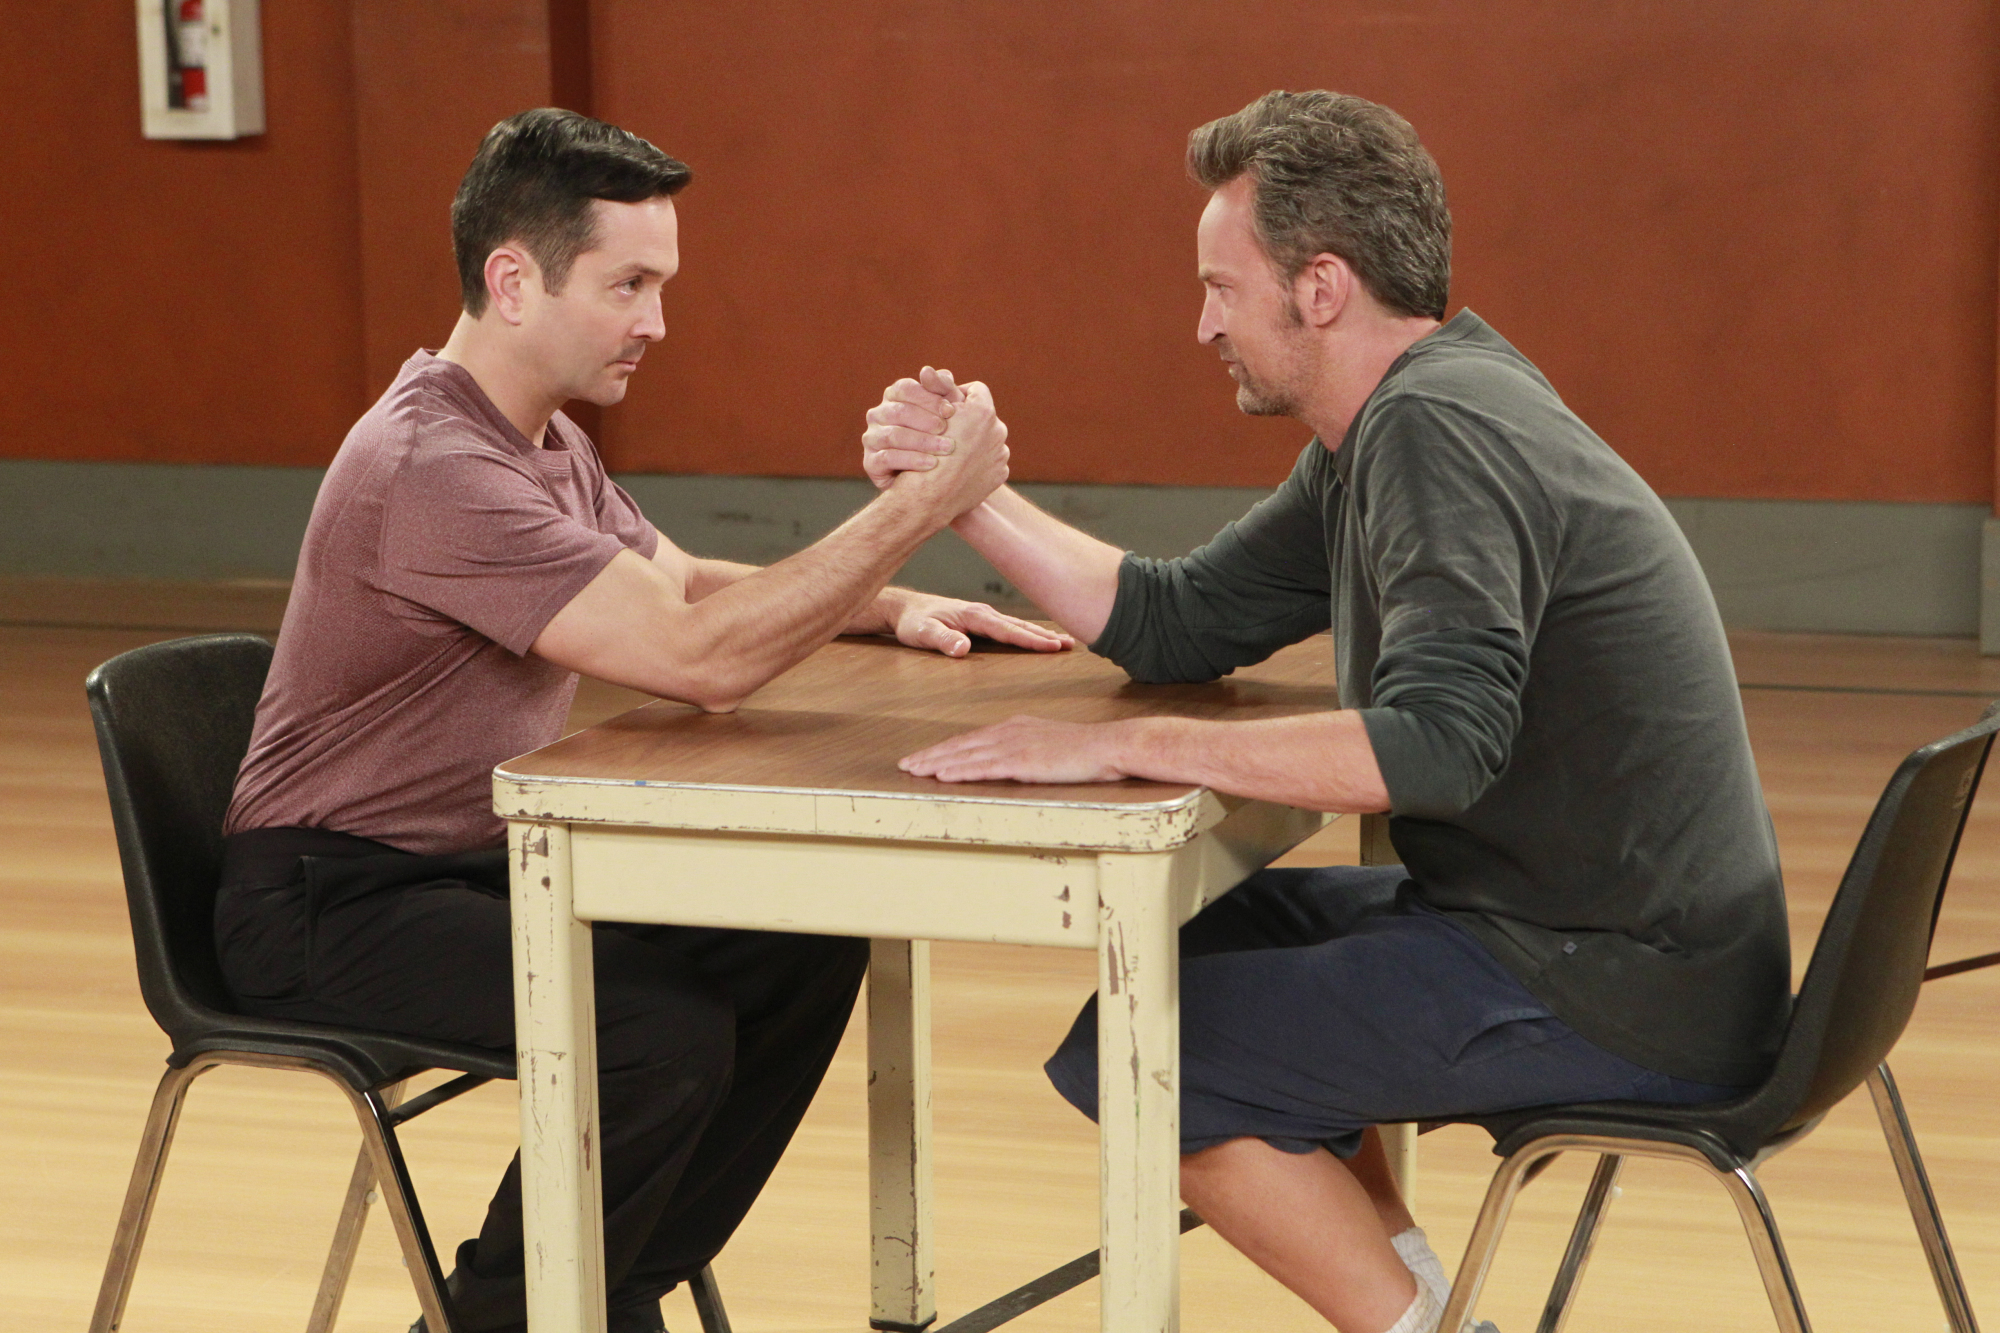 The ultimate arm wrestle